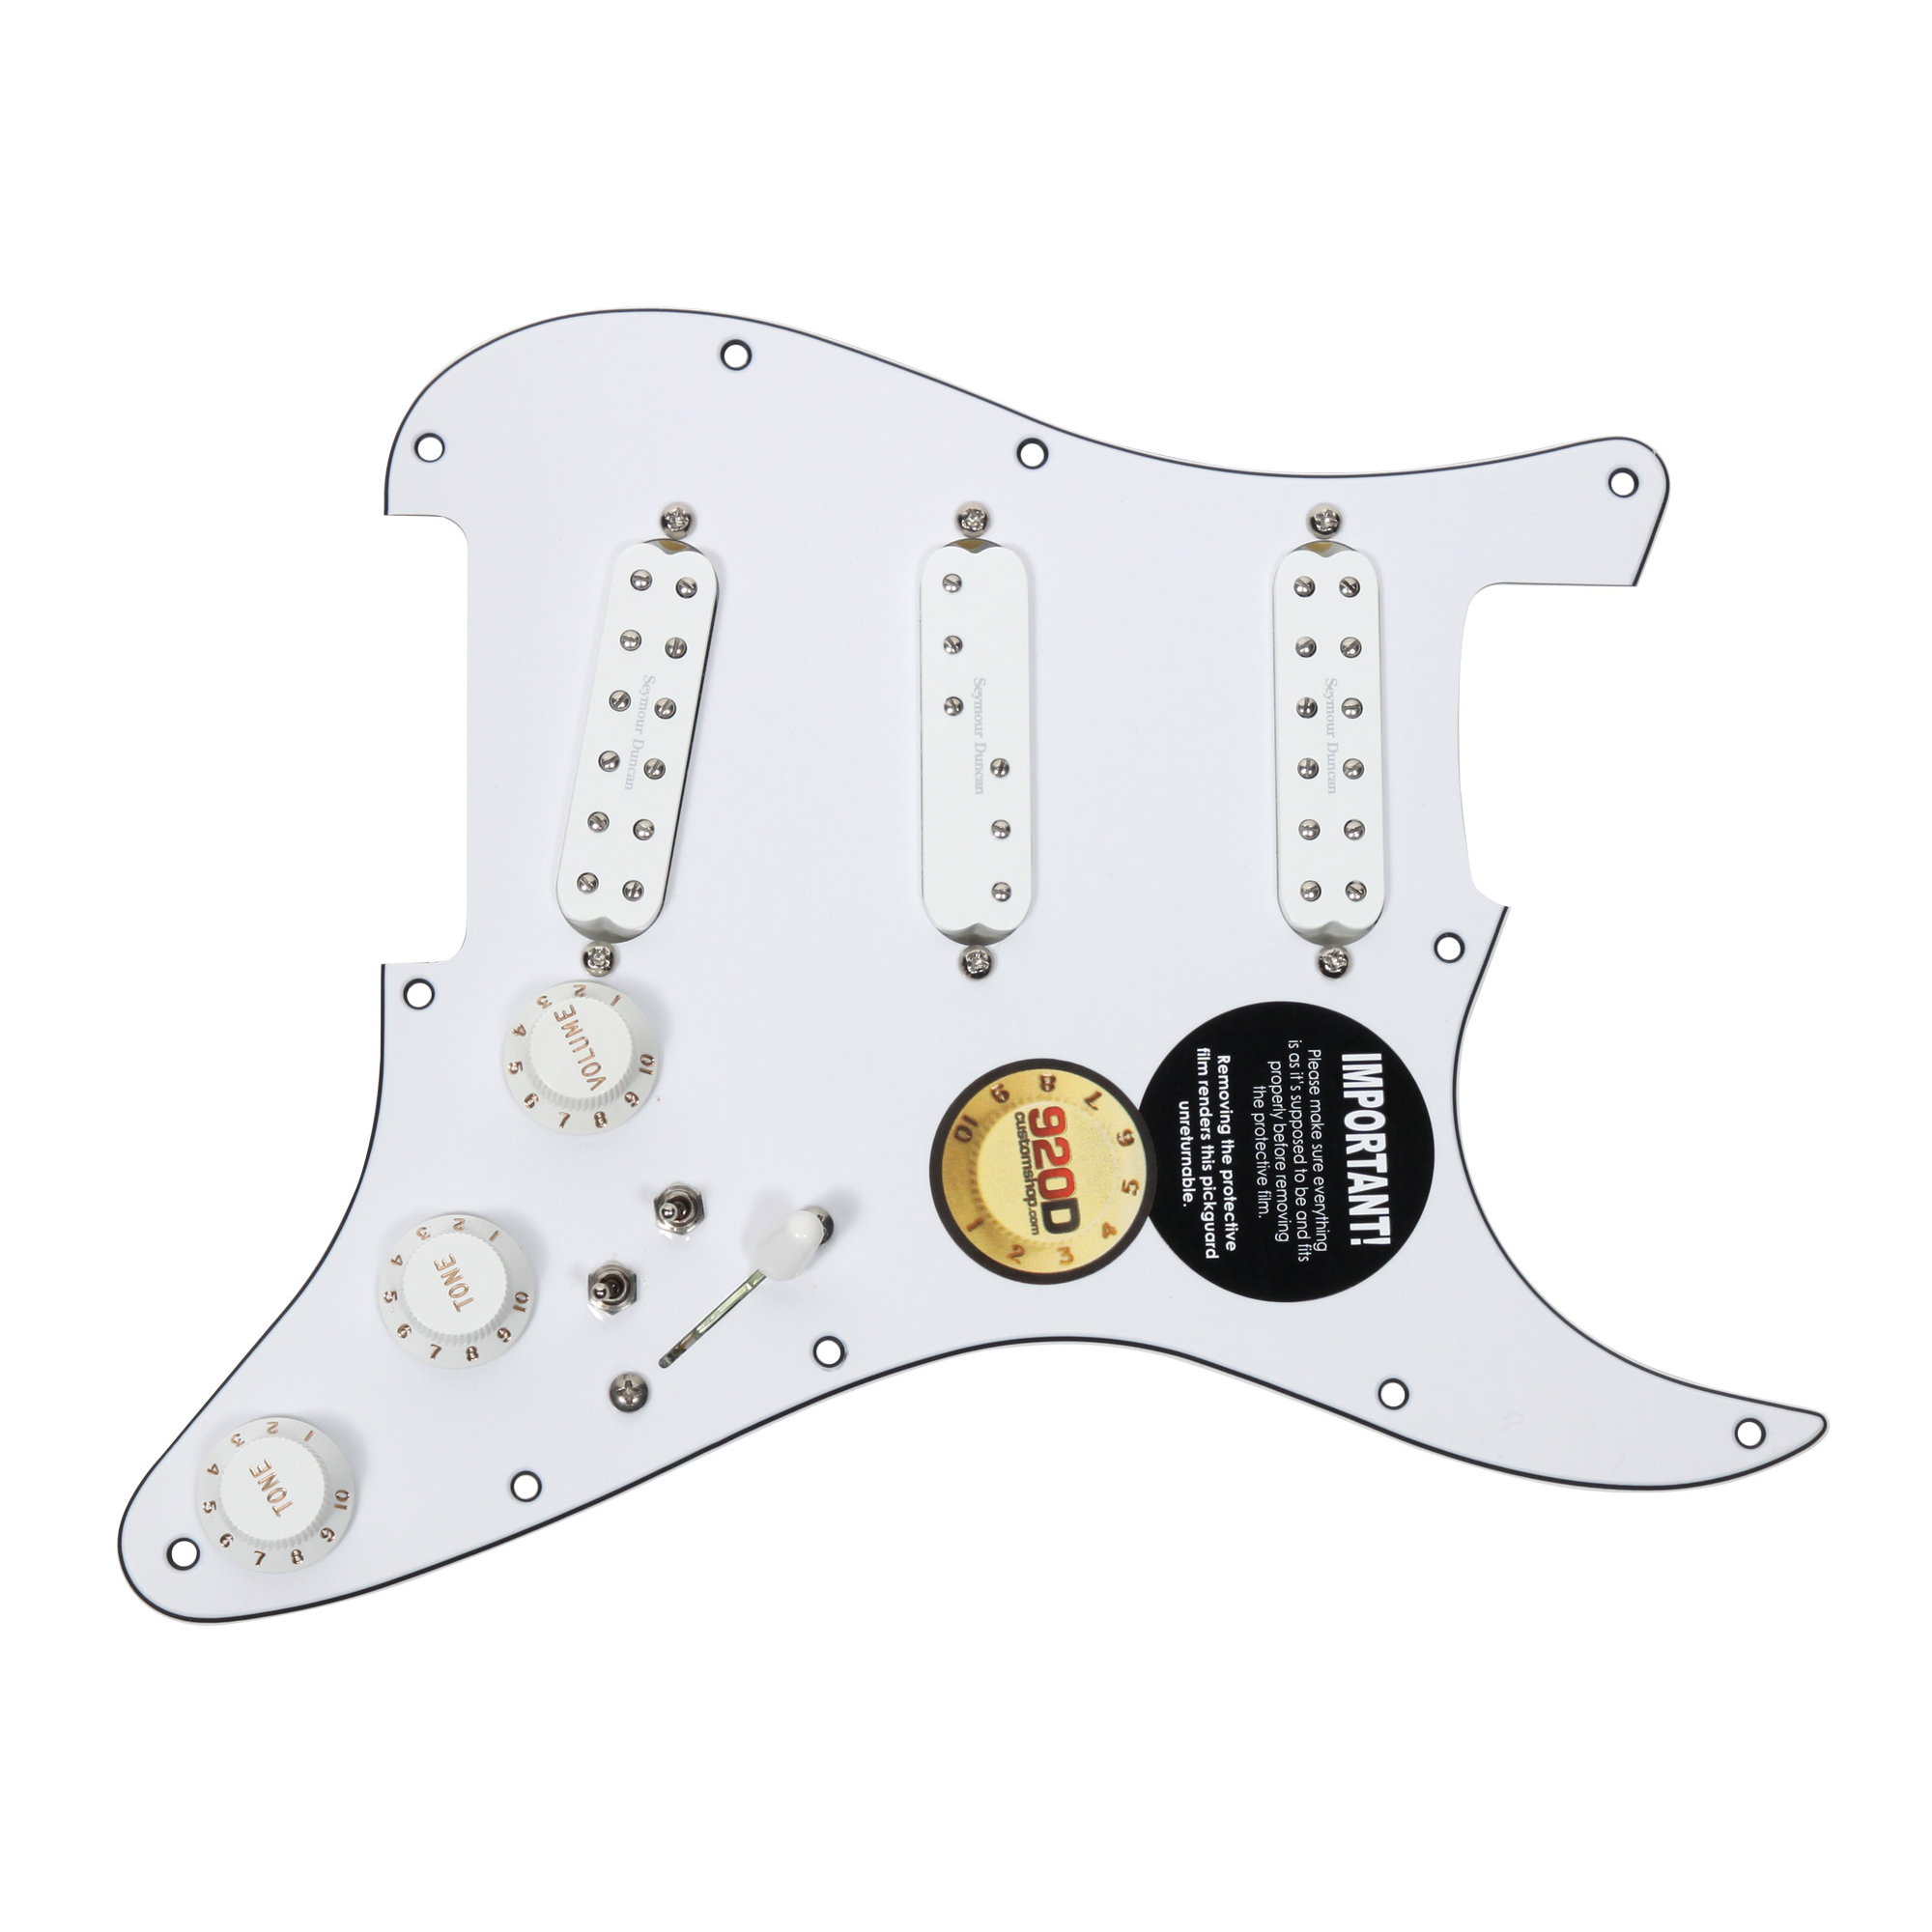 Duncan SJBJ   SDBR   SL59 Loaded Pickguard Everything Axe W  2 Toggles WH WH by